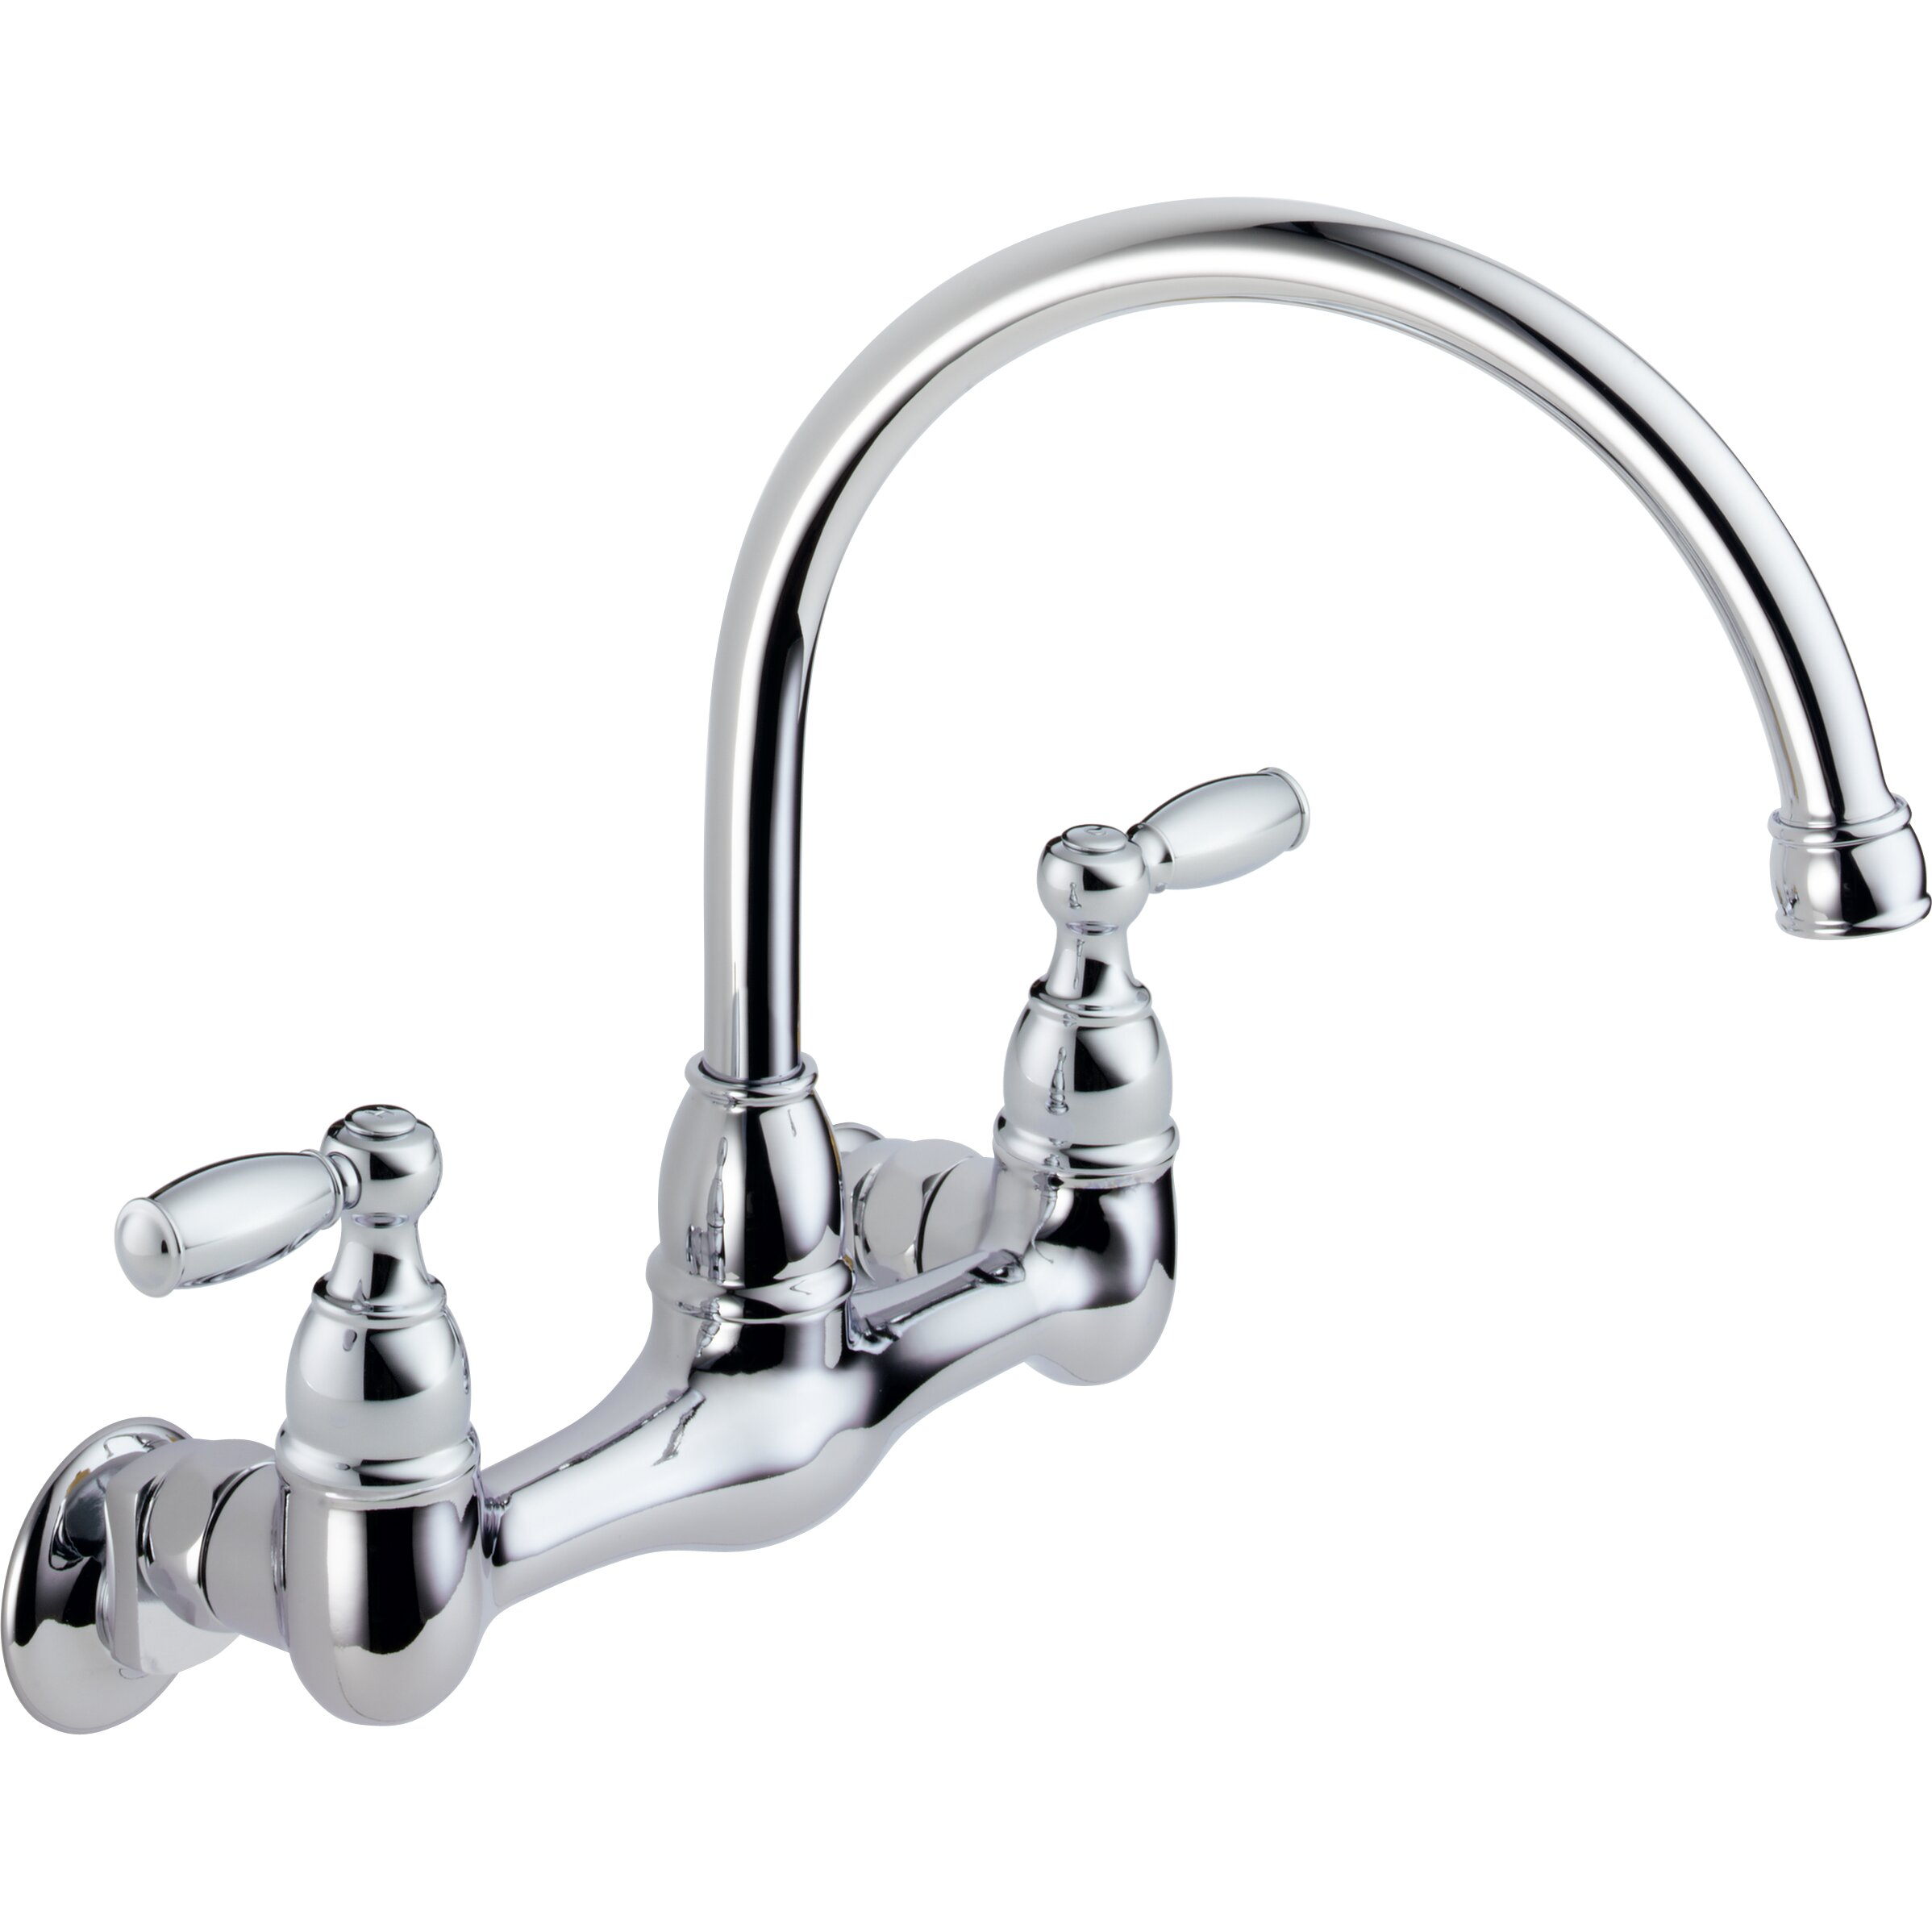 Two Handle Kitchen Faucet: Peerless Faucets Two Handle Wall Mounted Kitchen Faucet